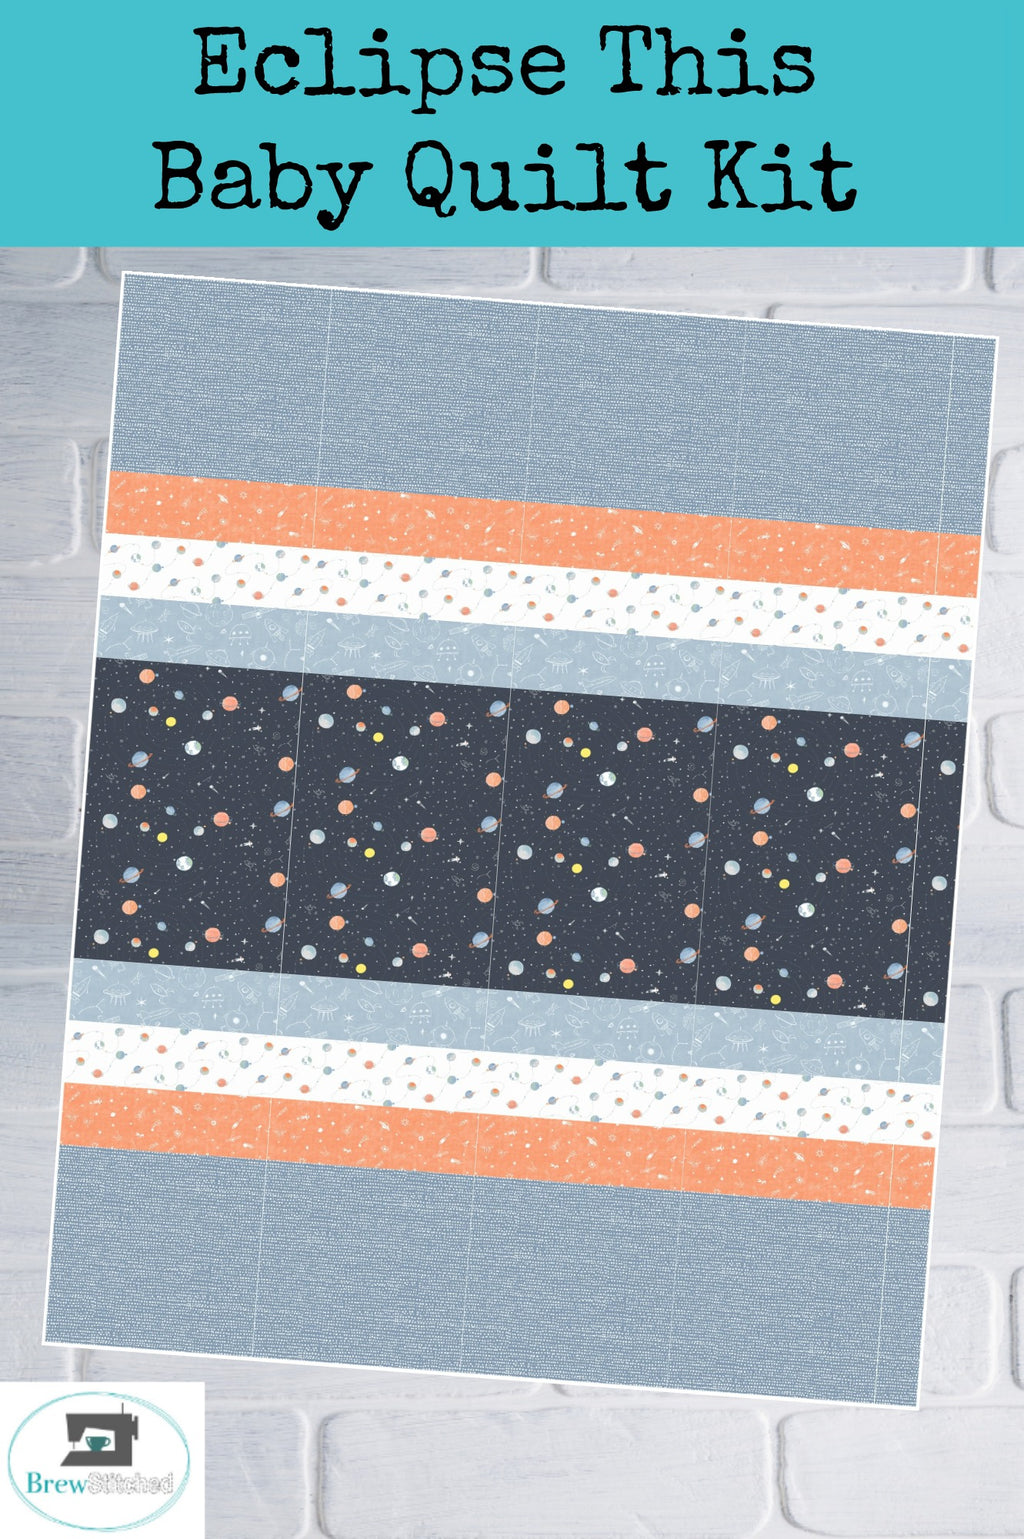 Eclipse This Baby Quilt Kit - brewstitched.com